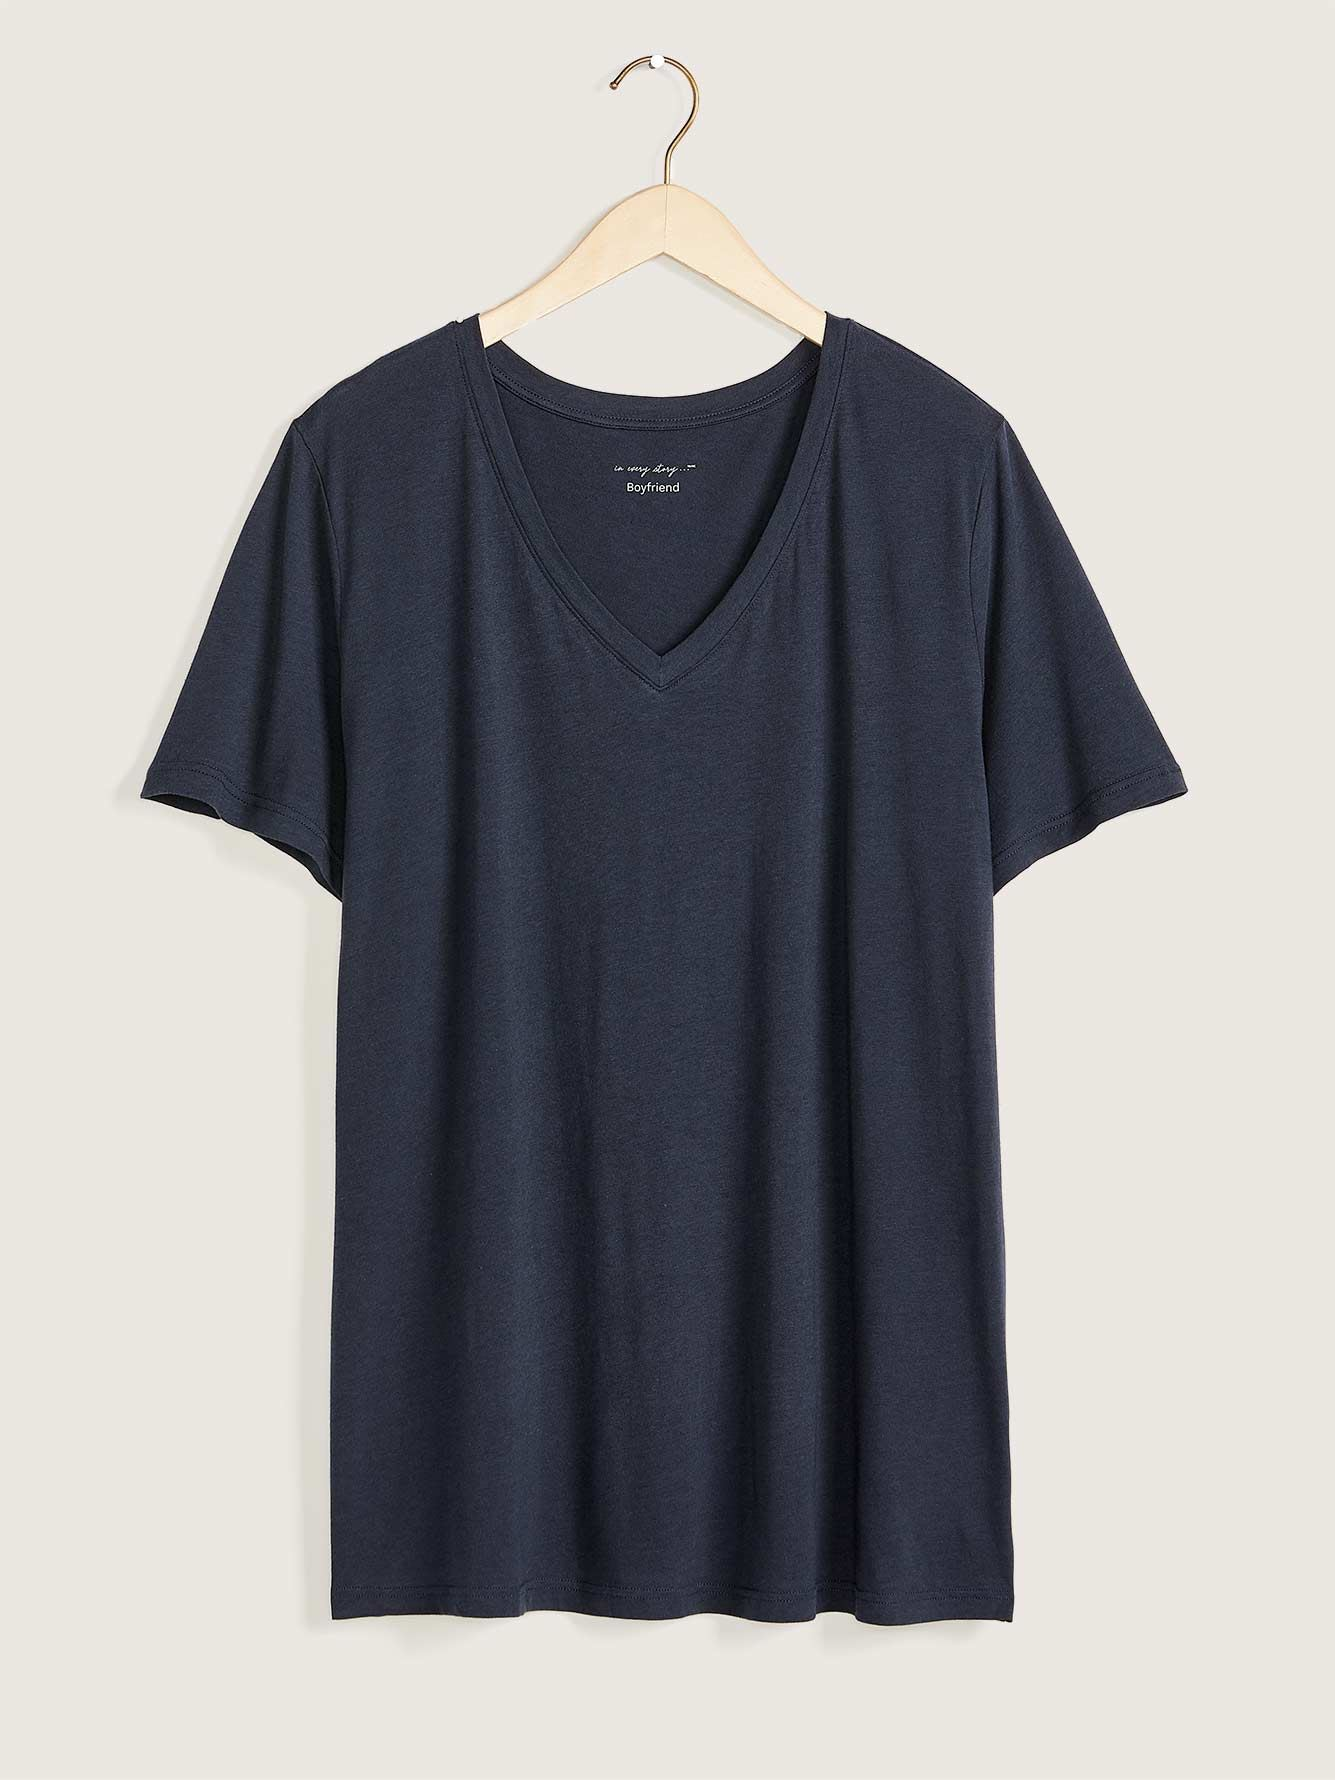 Relaxed Fit V-Neck T-Shirt - In Every Story